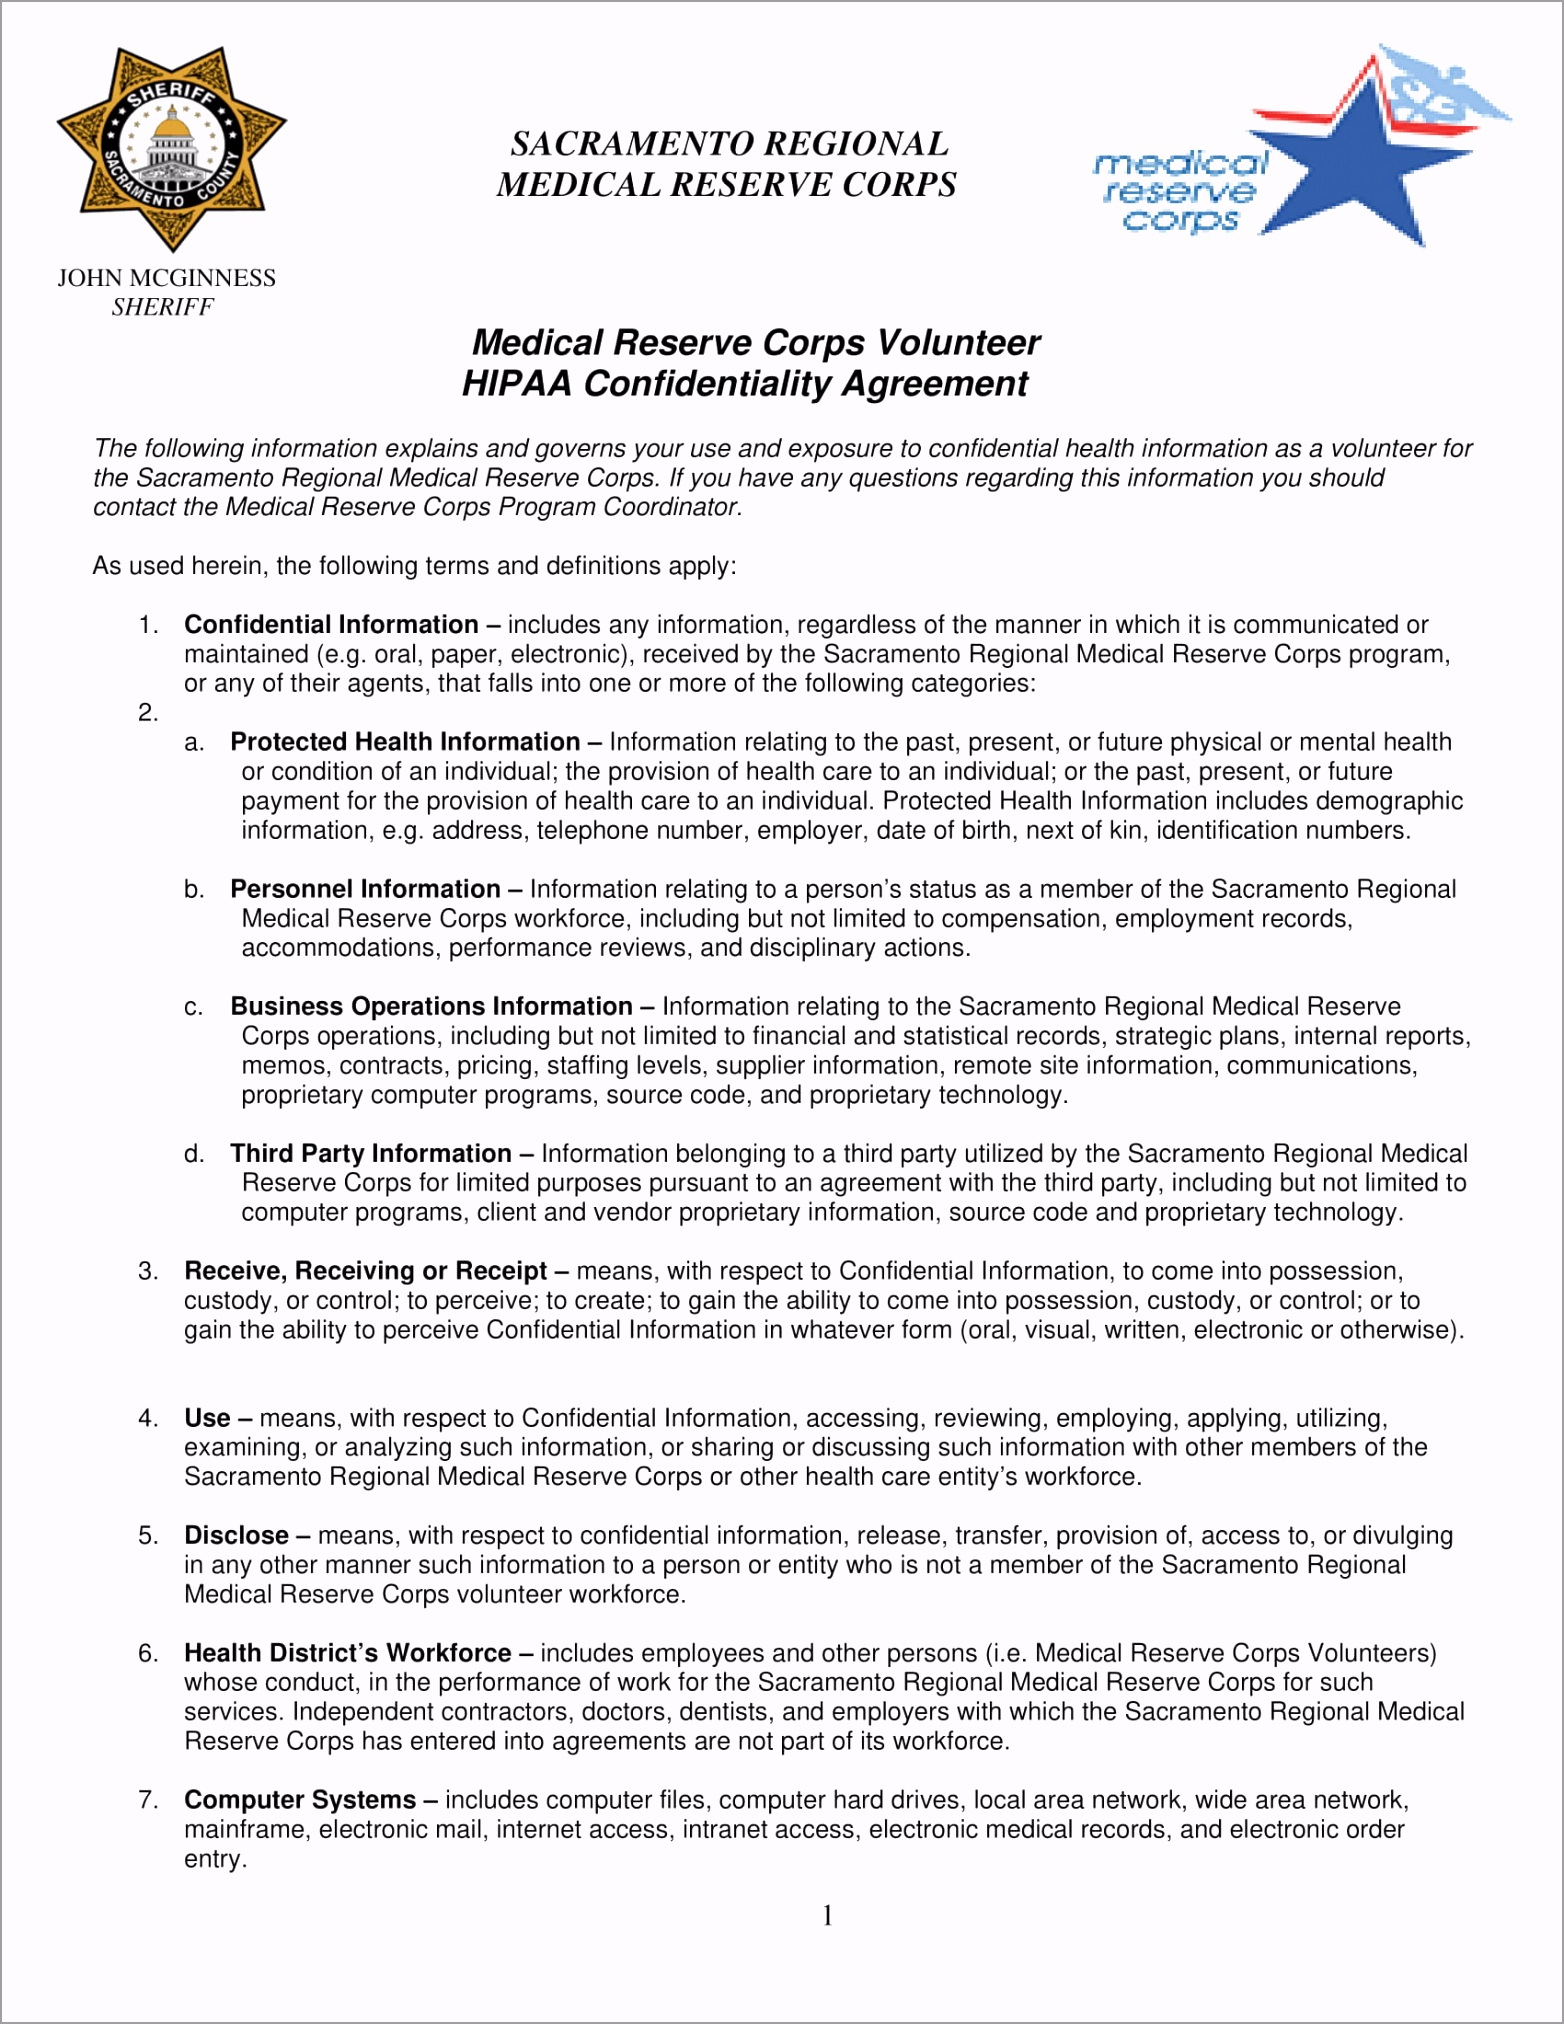 Medical Reserve Corps Volunteer HIPAA Confidentiality Agreement Example 1 uuity